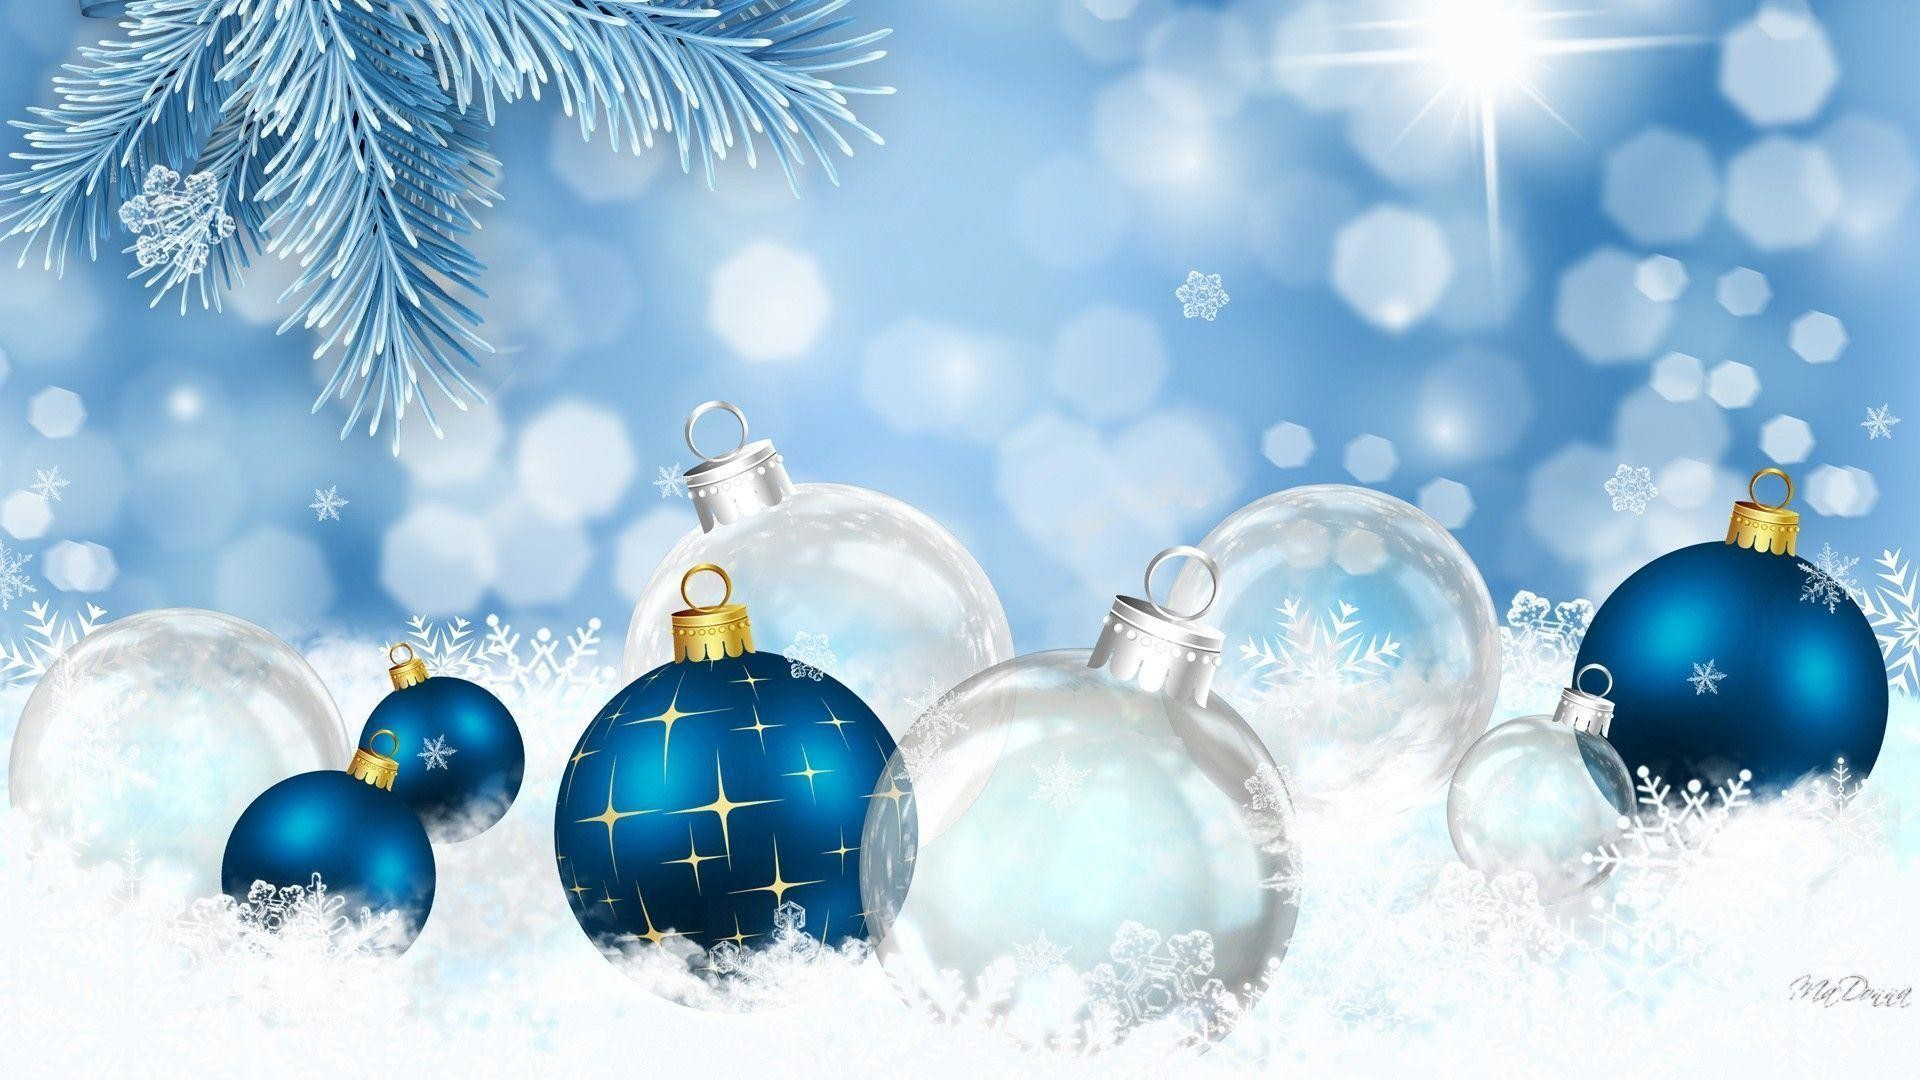 Free Download 70 Christmas Background Wallpapers On